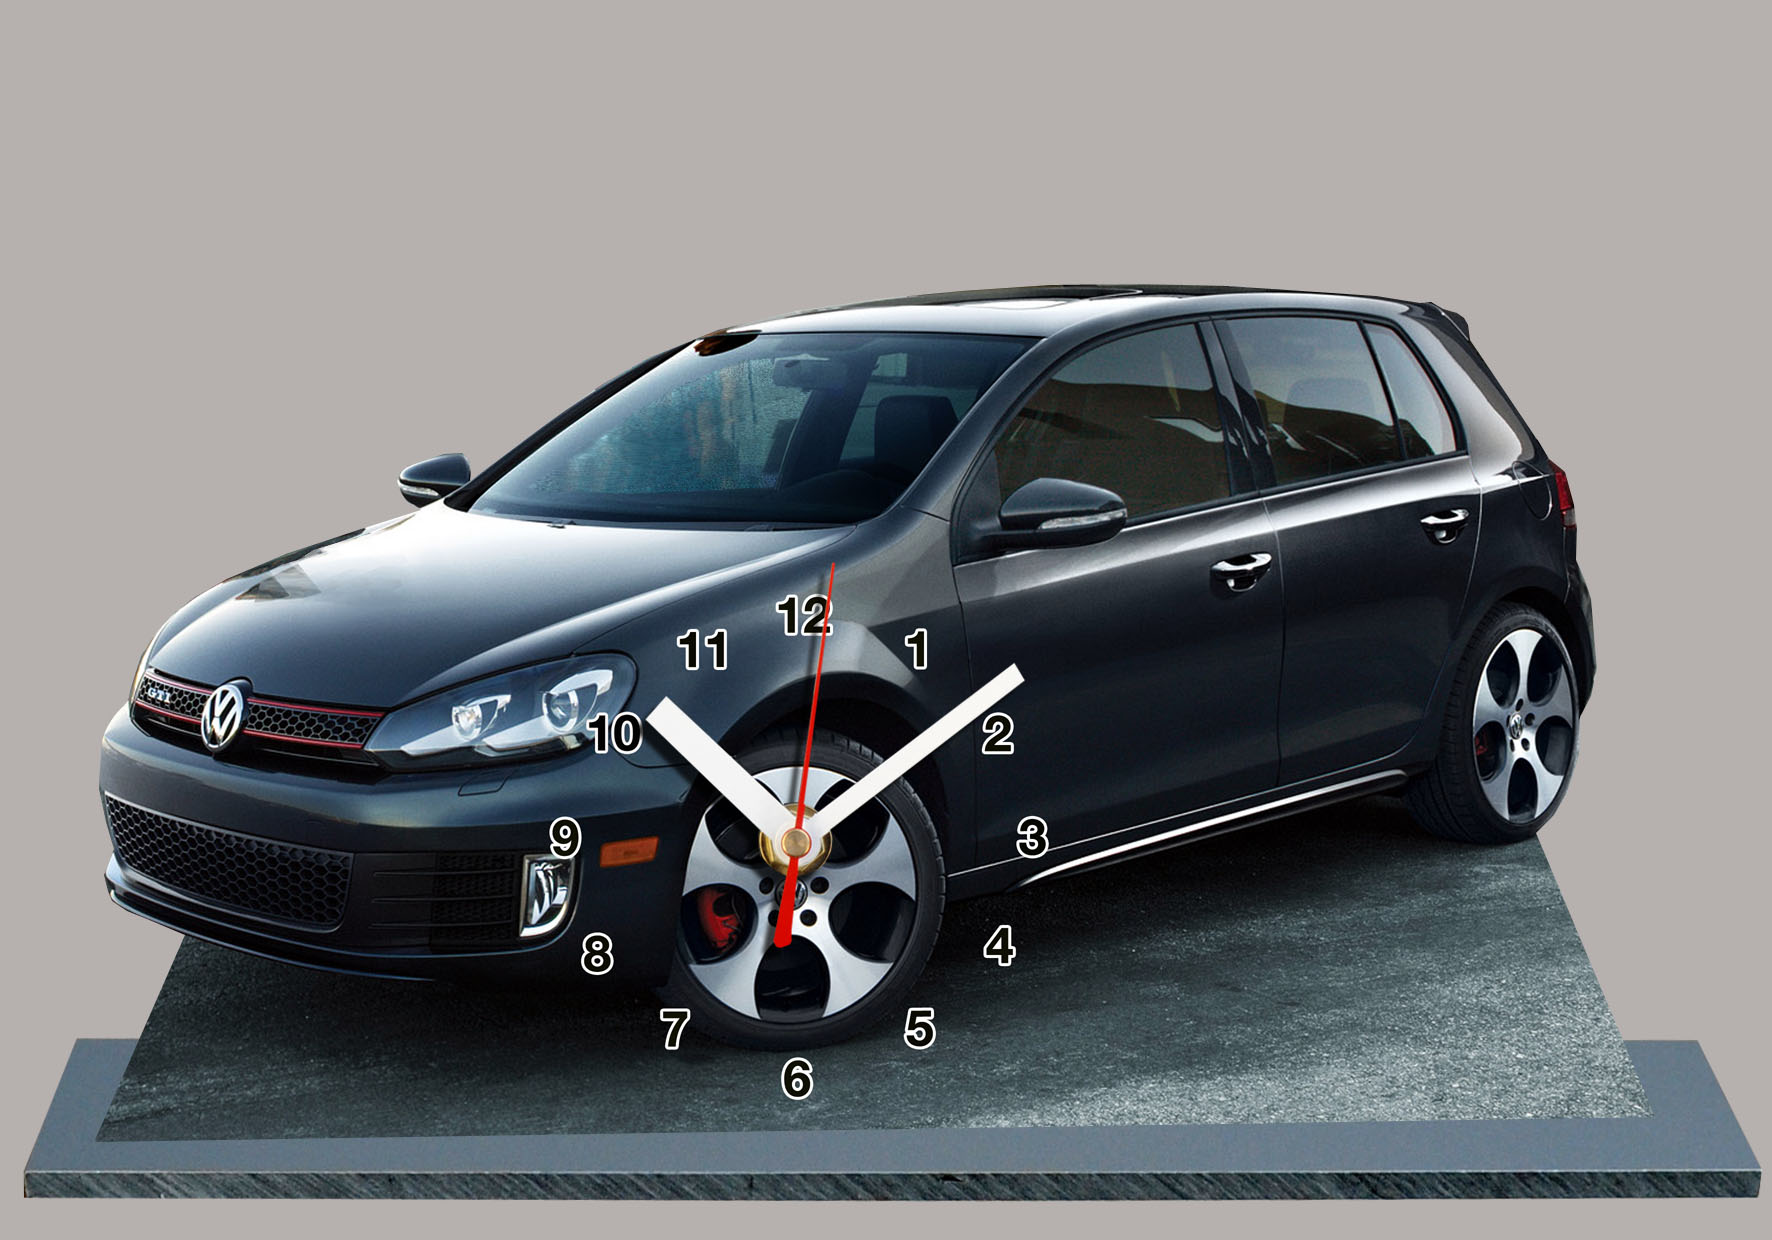 volkswagen golf gti vi noire en auto horloge miniature. Black Bedroom Furniture Sets. Home Design Ideas